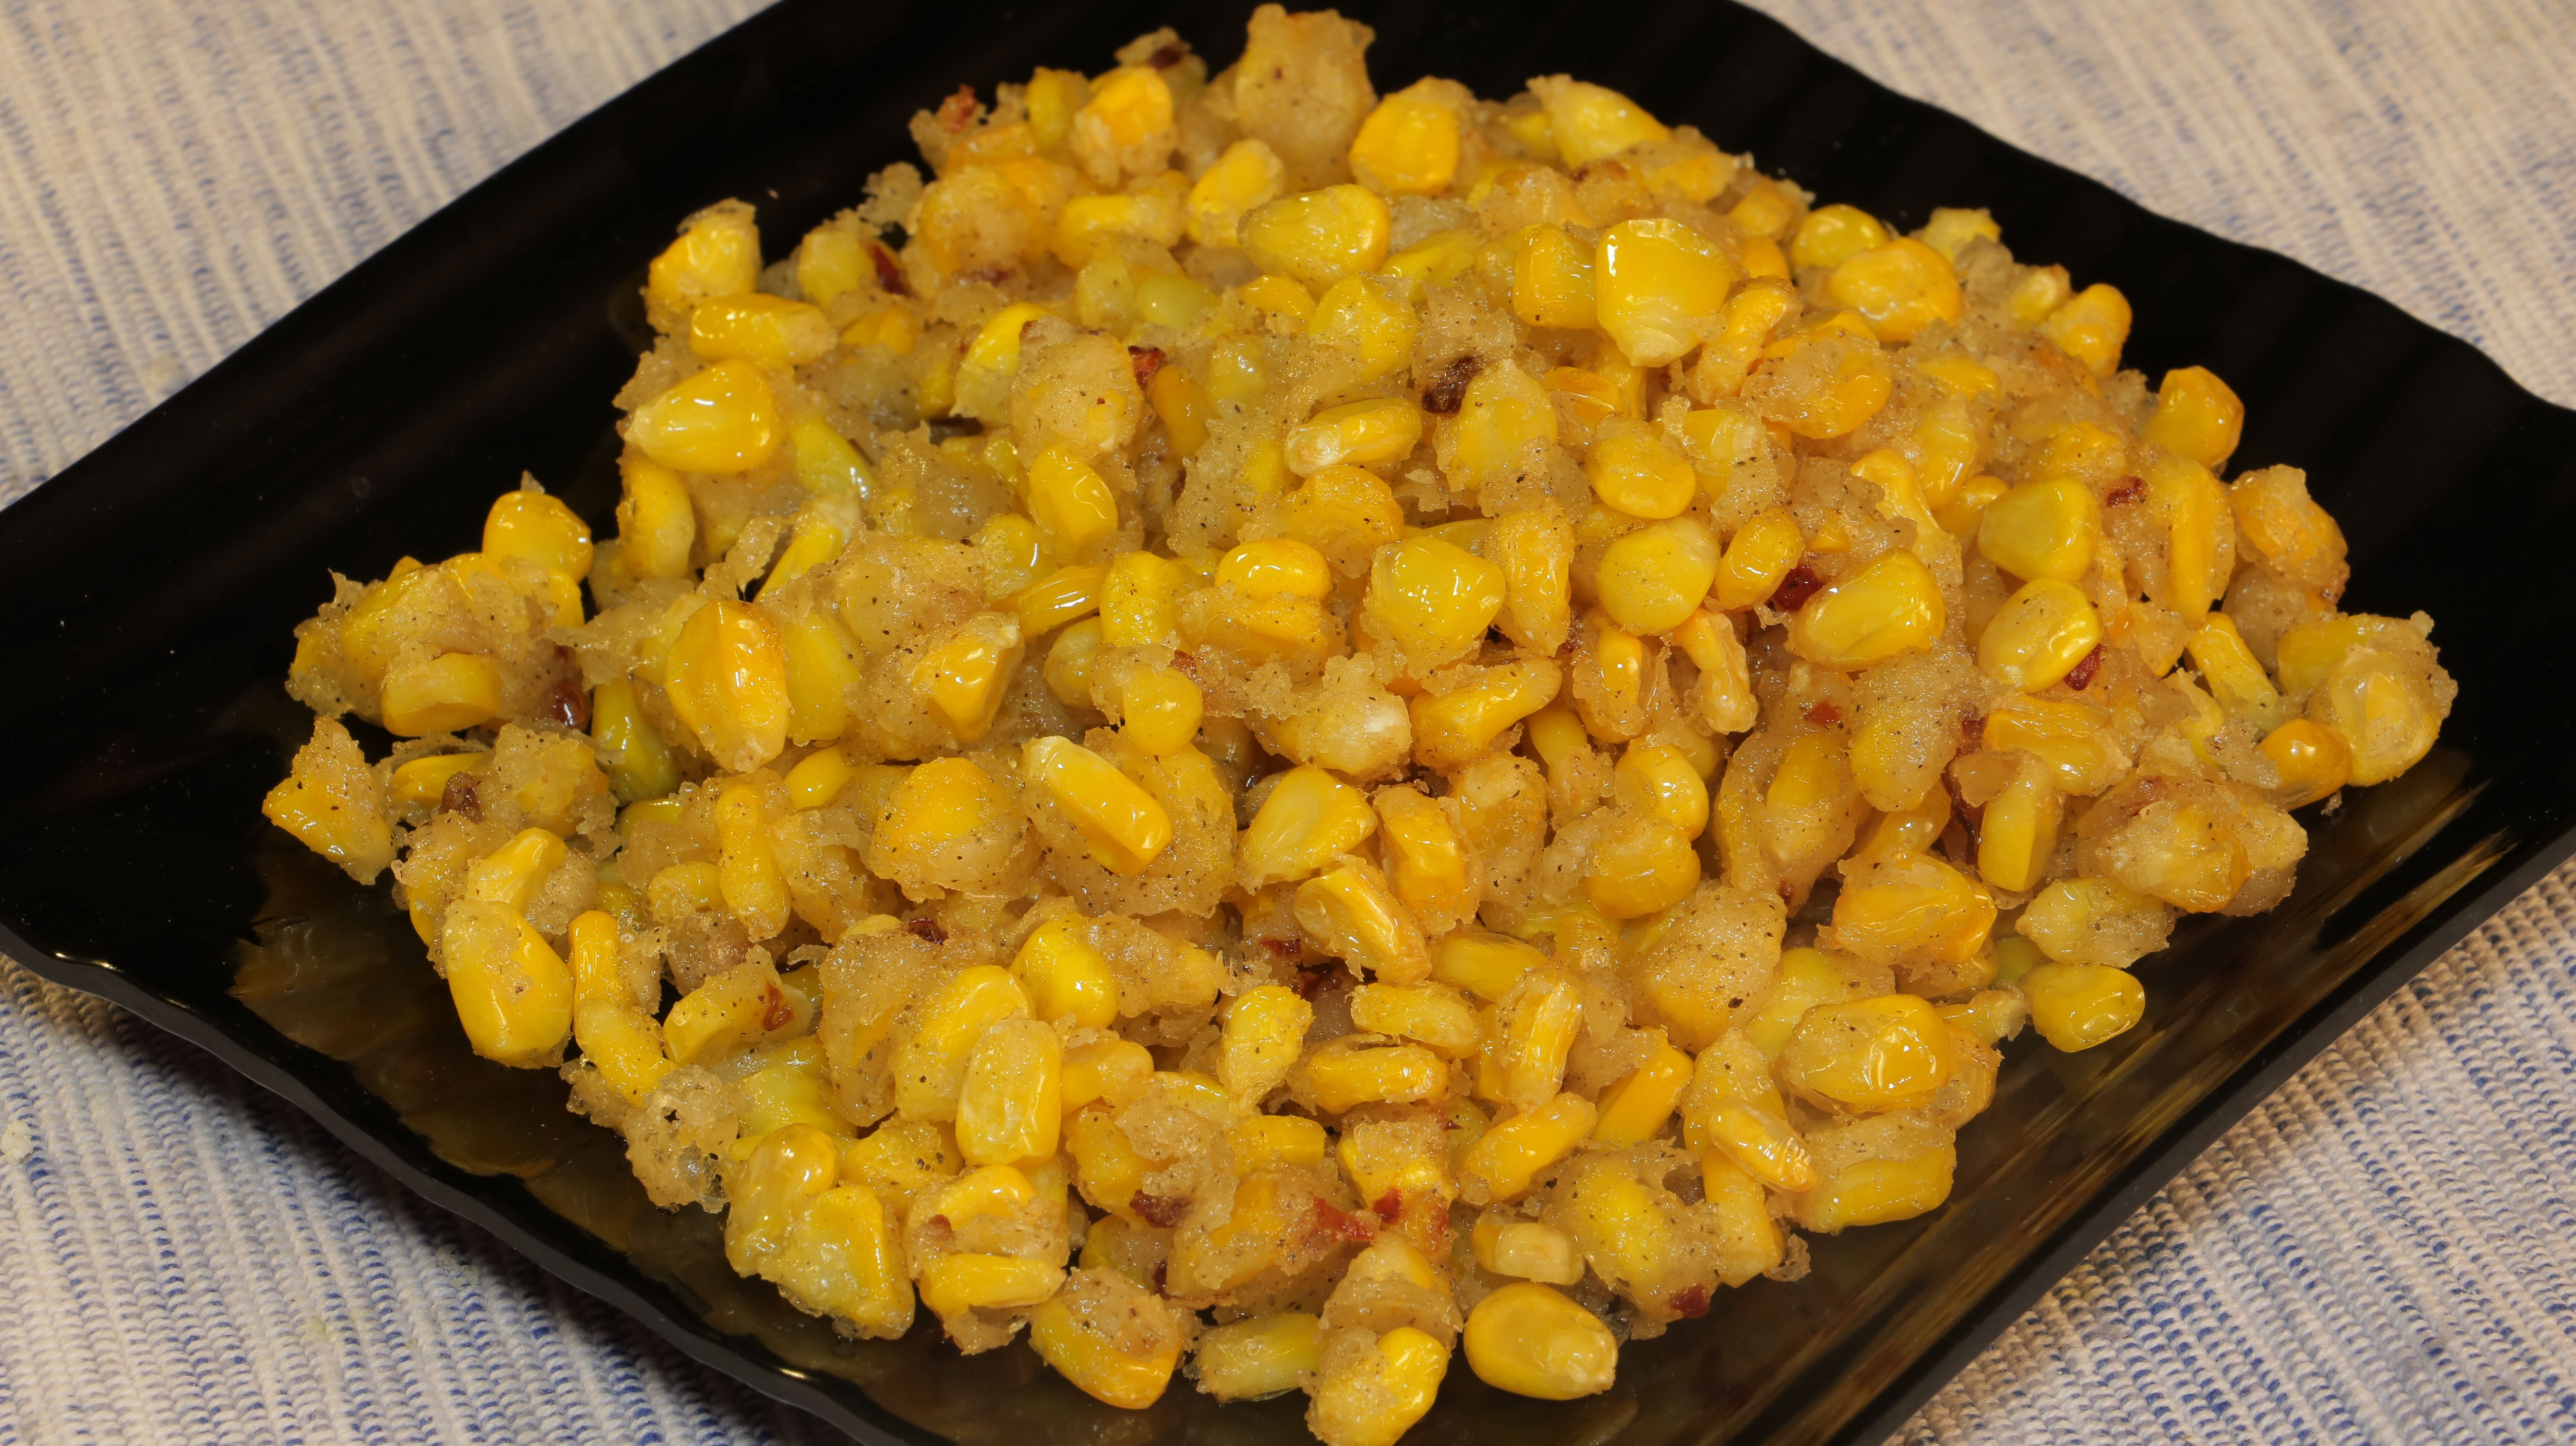 Crispy sweet corn recipe in hindi watch how to make crispy sweet c crispy sweet corn recipe in hindi watch how to make crispy sweet corn at home in hindi language with step by step preparation forumfinder Choice Image